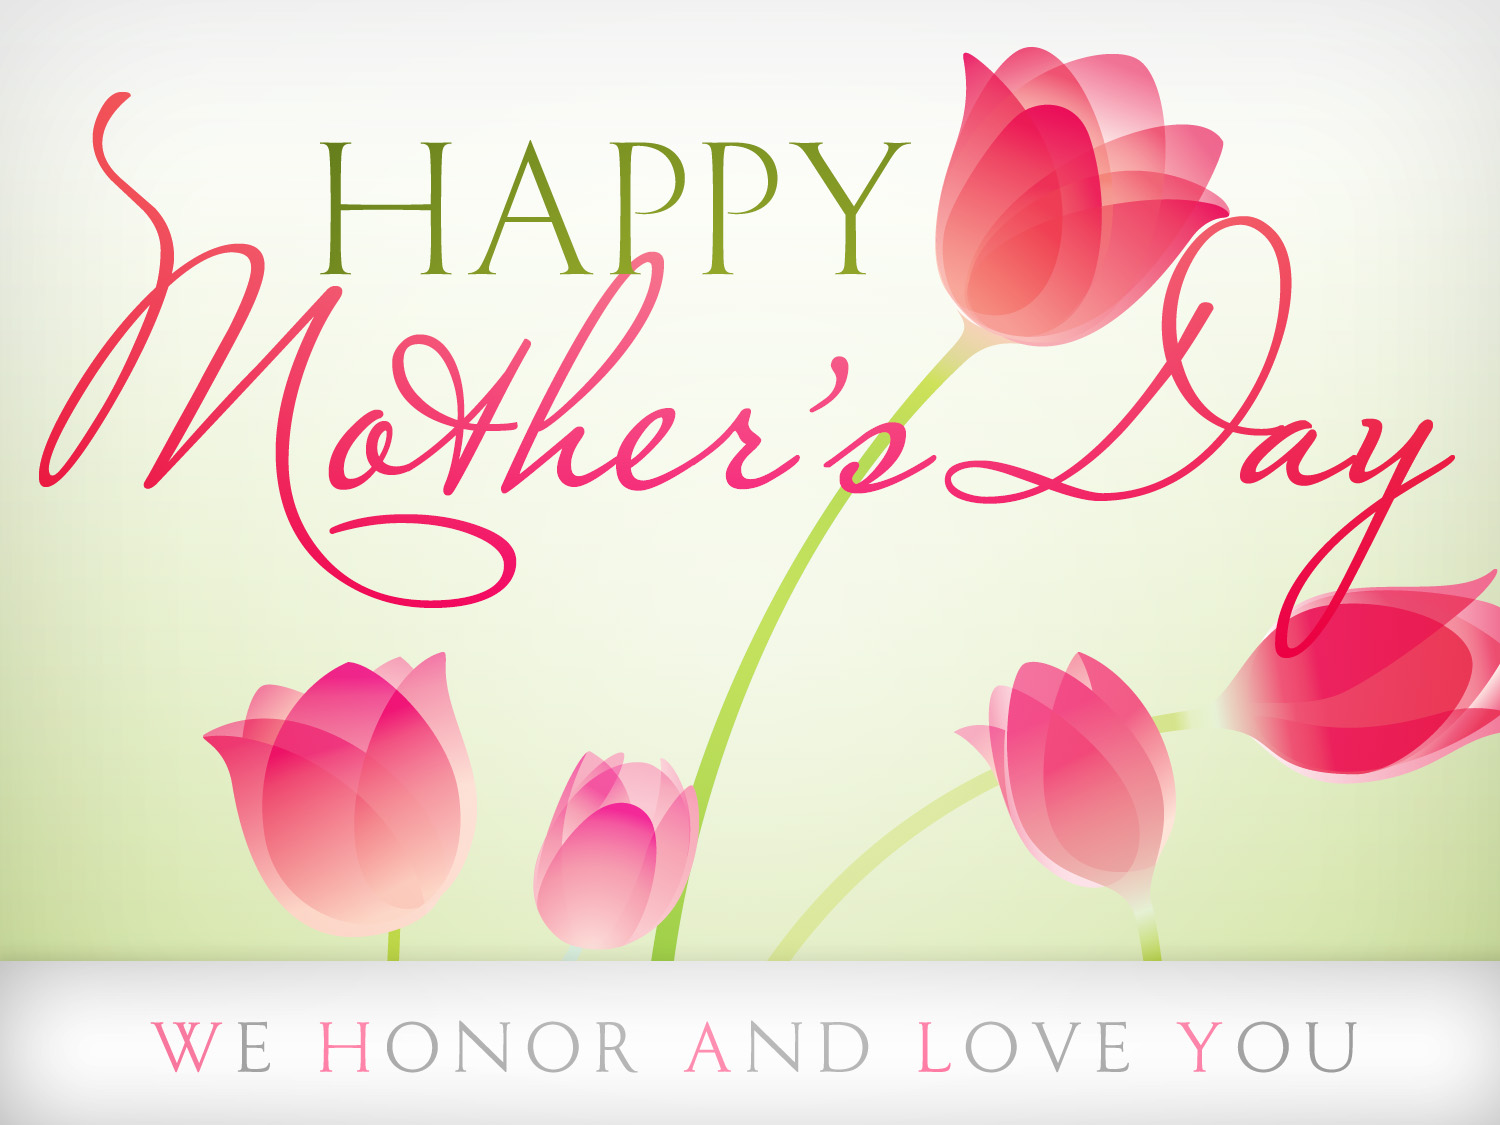 Happy Mothers Day 2019 Poem Quotes From Daughter Happy Mothers